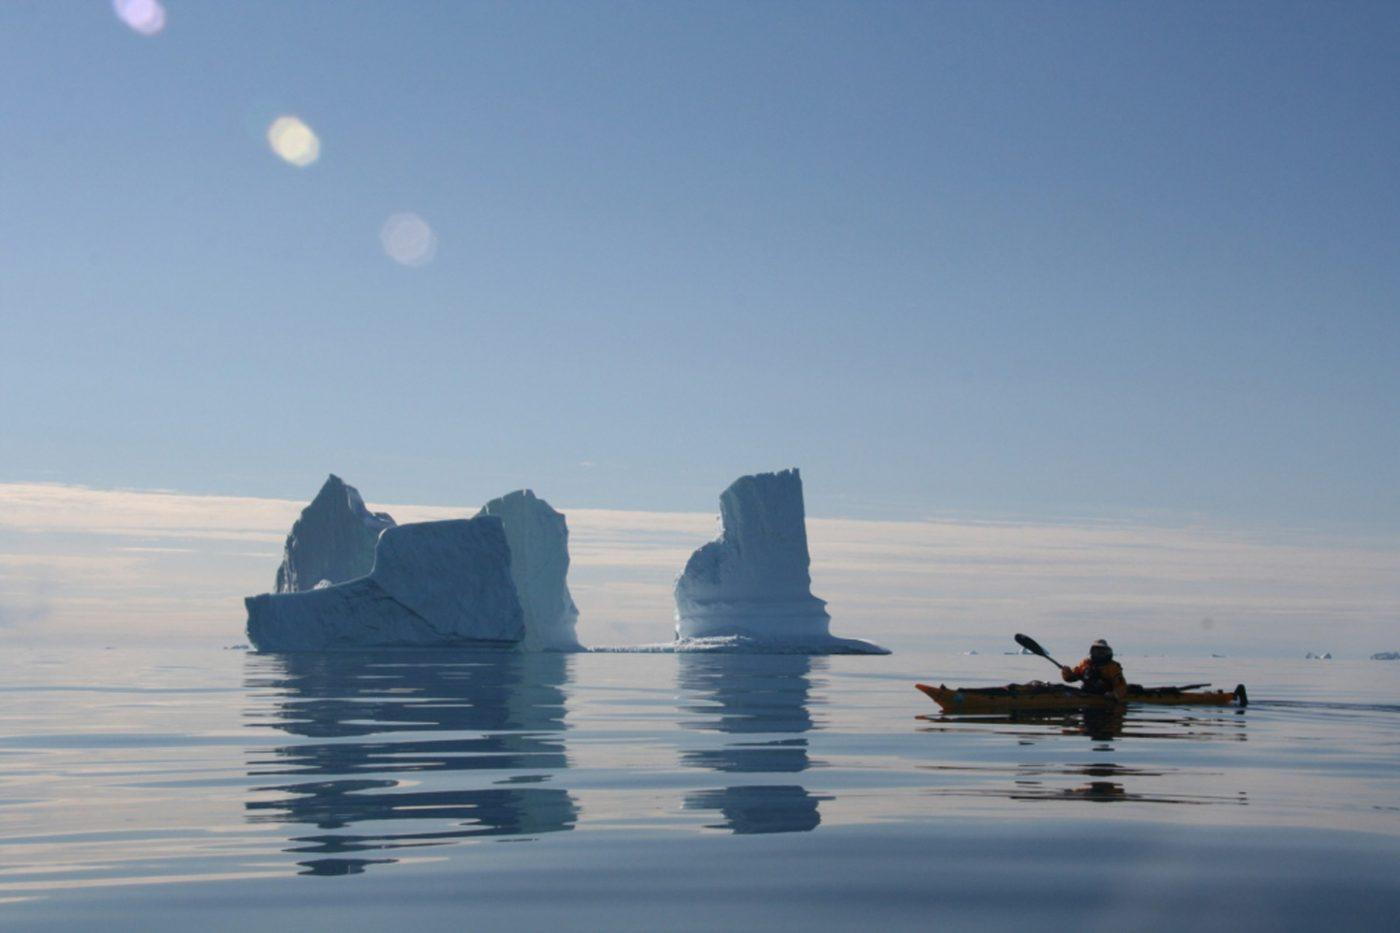 79: Grönlandsresor – The great Greenlandic kayak expedition in Upernavik